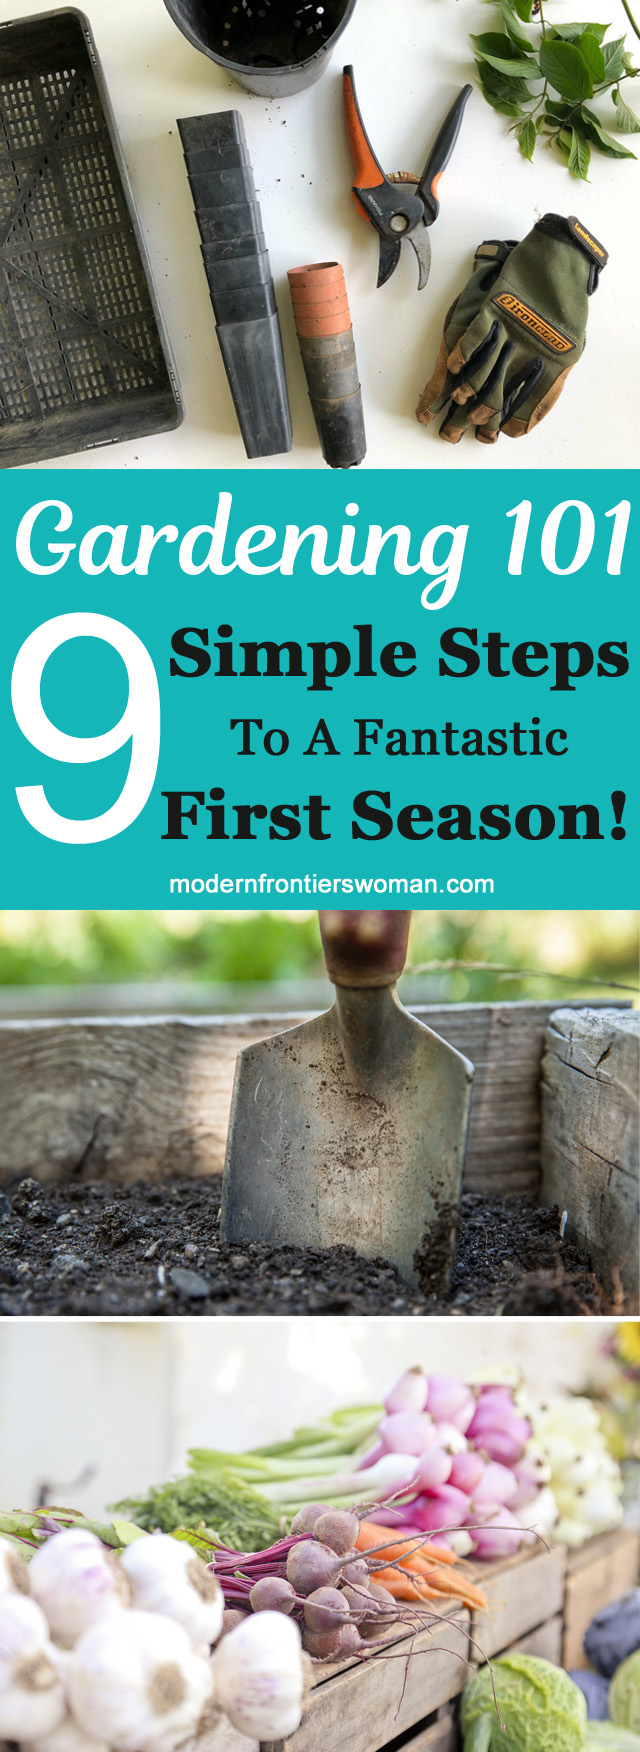 9 Simple Steps to a Fantastic First Season